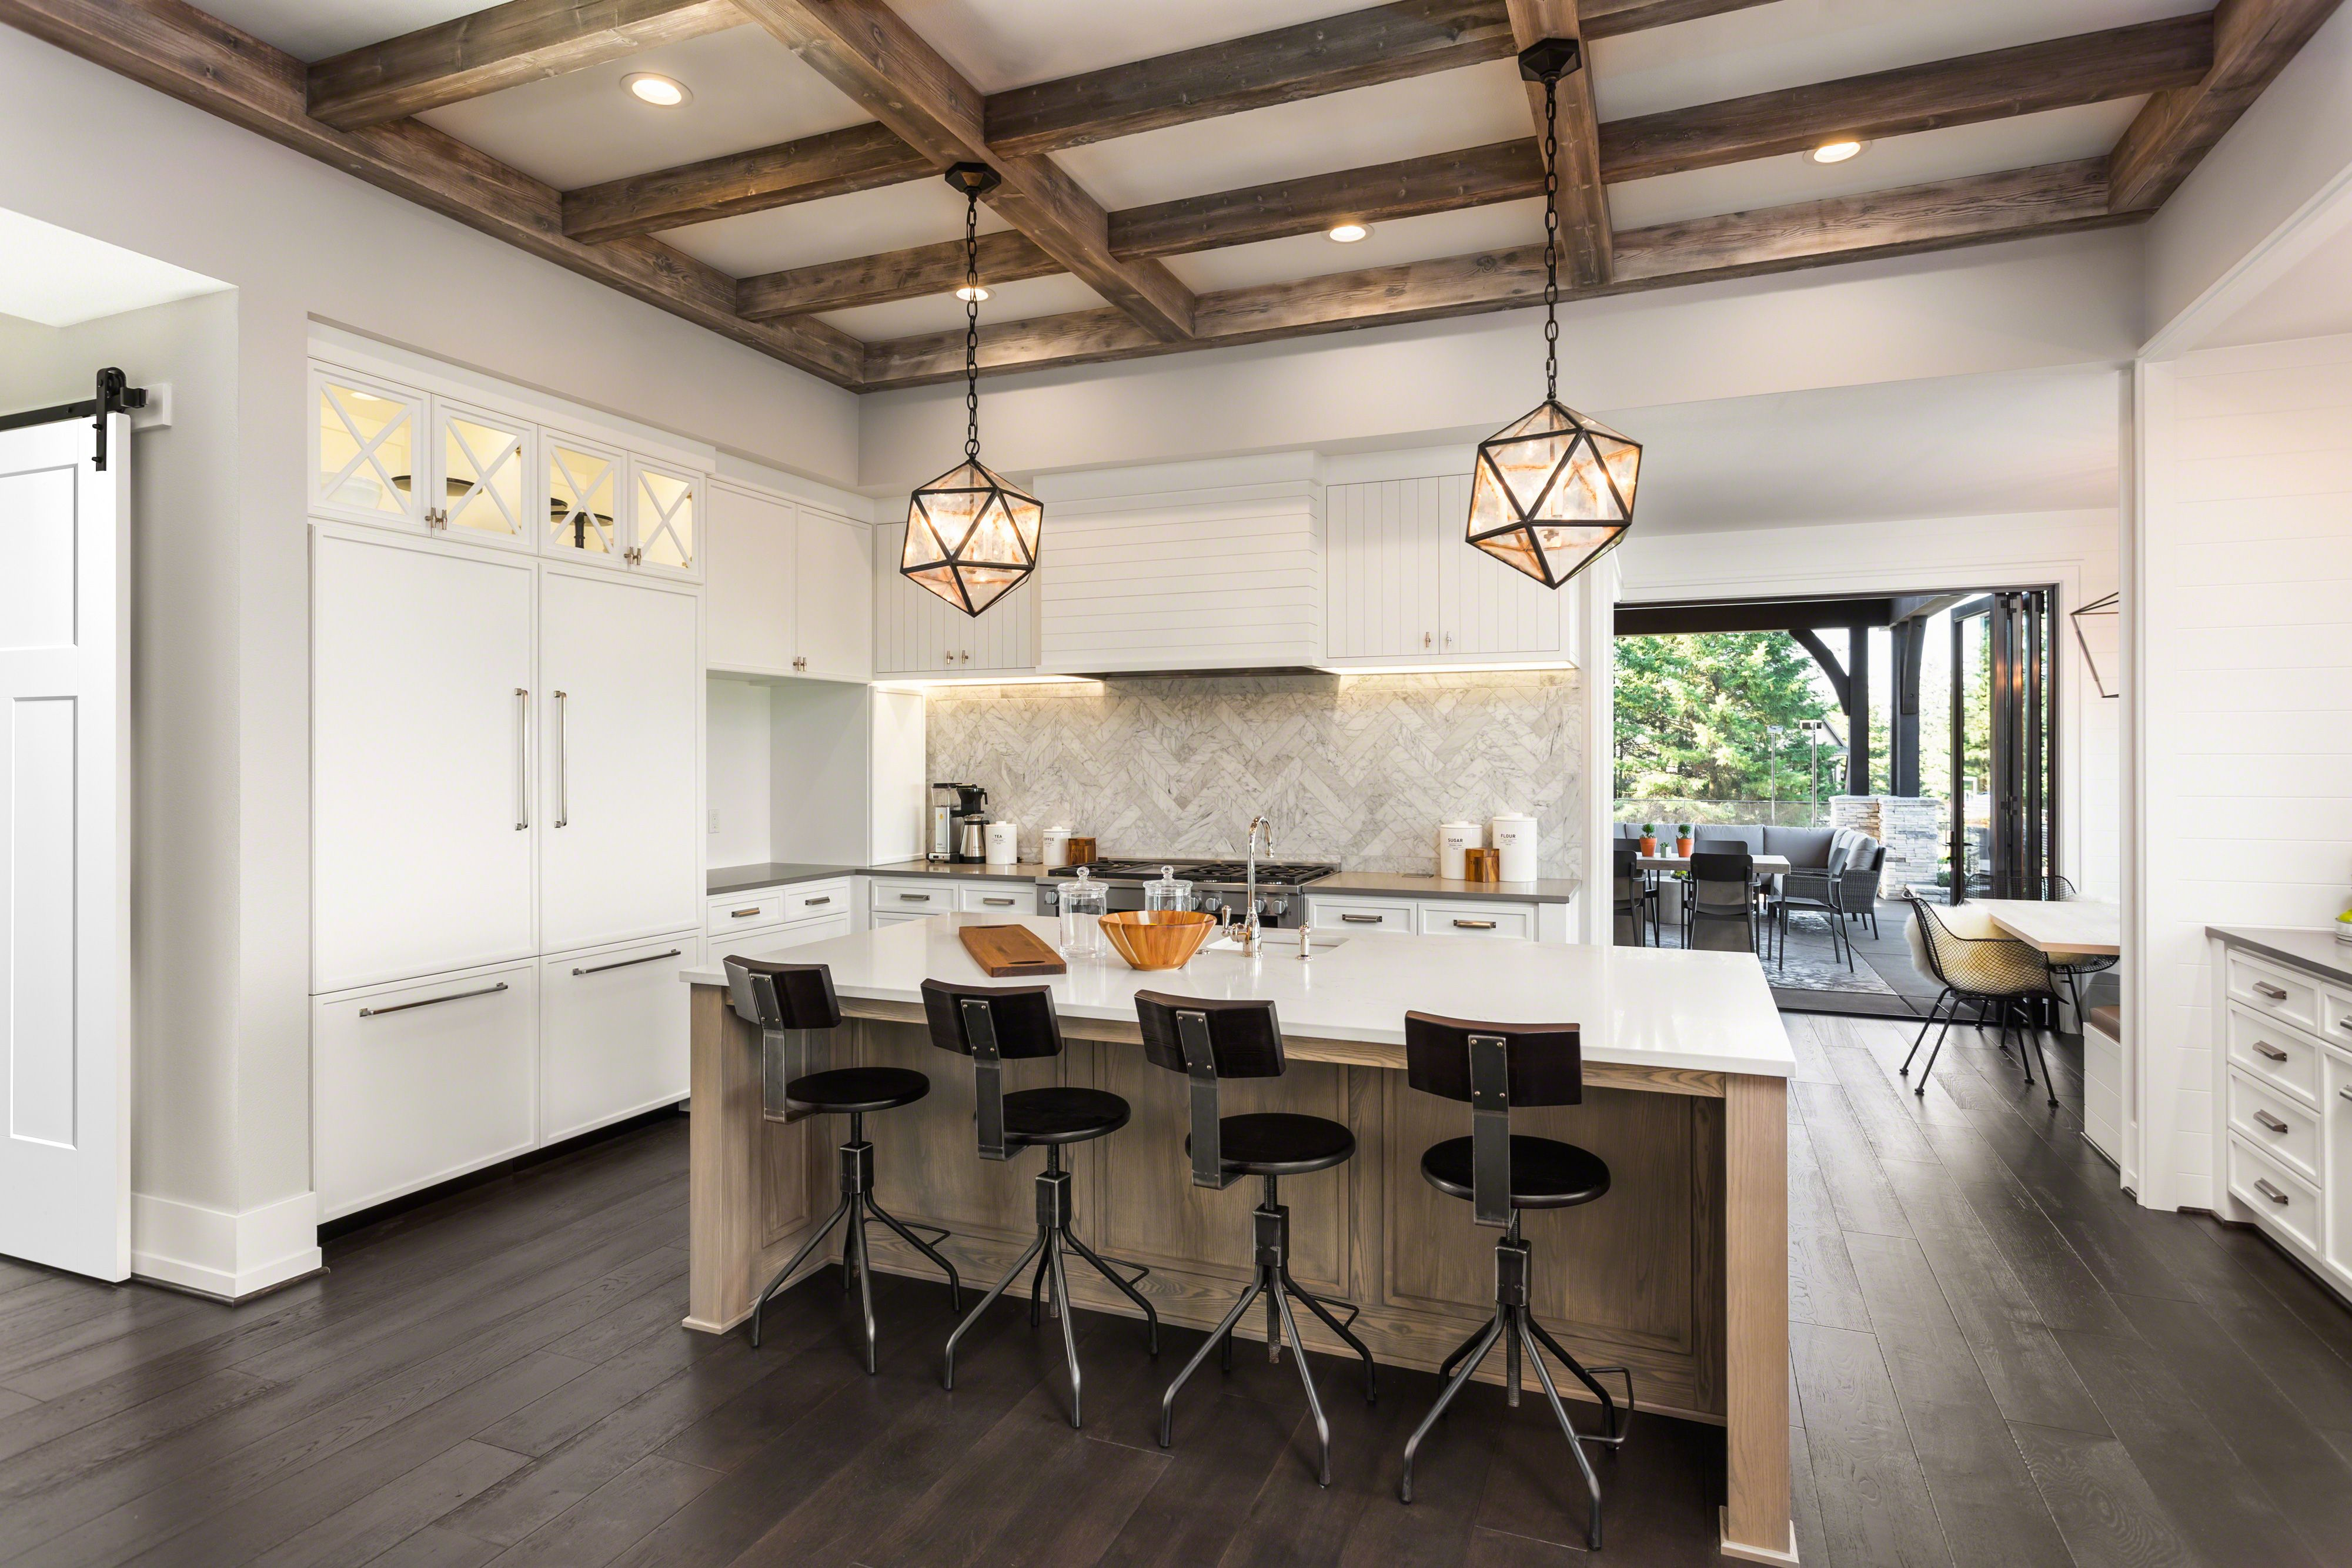 This Is A White Craftsman Style Kitchen With Wooden Ceiling Beam